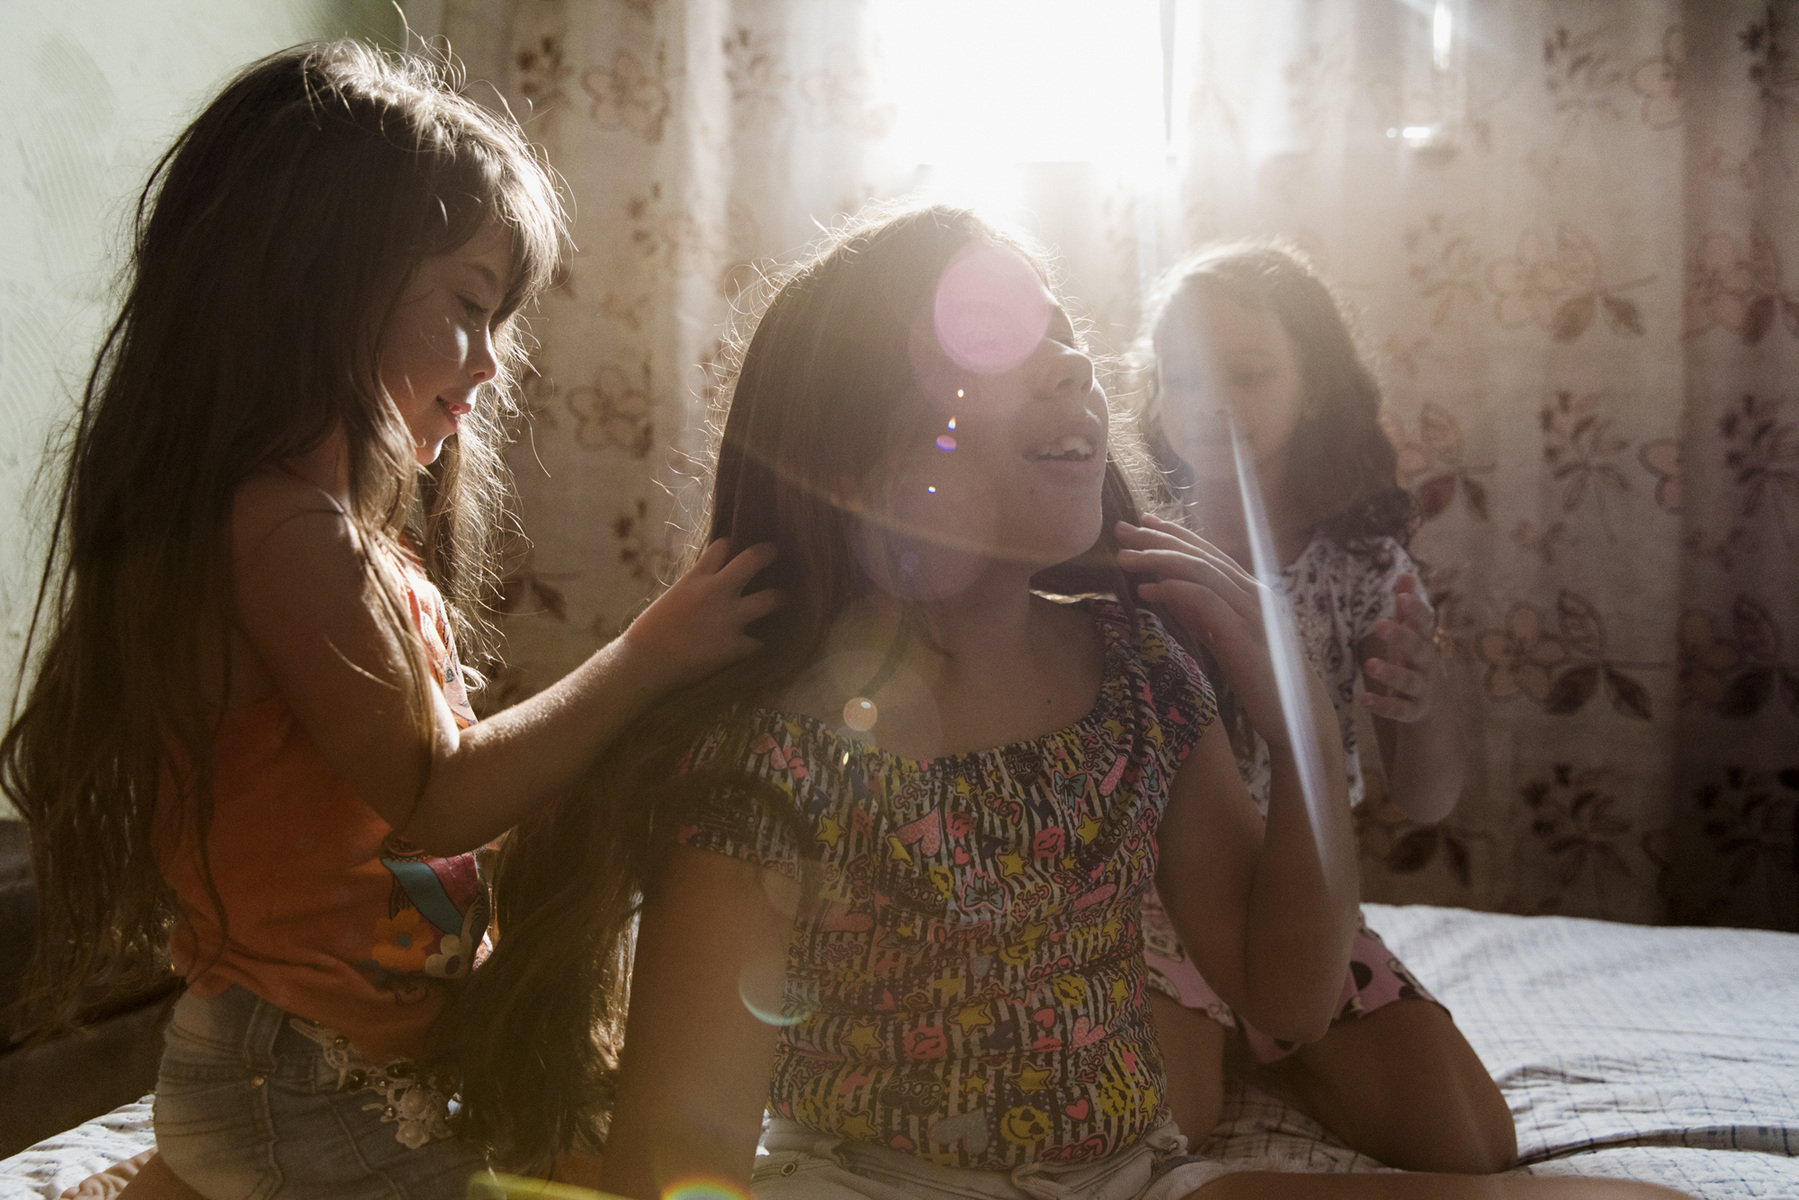 "Adrienne Surprenant - 23/01/2019, Rio de Janeiro, Brazil—Micaelly, 11, Rafaella, 6, and Ana Clara, 7, participate to the TV003 dengue vaccine developed by the National Institute of Allergy and Infectious Diseases (NIAID) at the American Nacional Health Institute (NHI) and the Brazilian governmental research institute Butantan. It's tested in 17 of the 27 Brazilian states over the course of five years. The last phase of this double-blinded test (even doctors don't know which patients received a placebo and which had the vaccine) is conducted in Rio, on children. There are currently five vaccines for dengue under development worldwide, two of them (including the TV003) are potential candidates and at the vaccine. Their mother admits she was very scared until the week after, when none of them had problems. Their grandmother remains furious, saying the parents used their children as ""guinea pigs."""